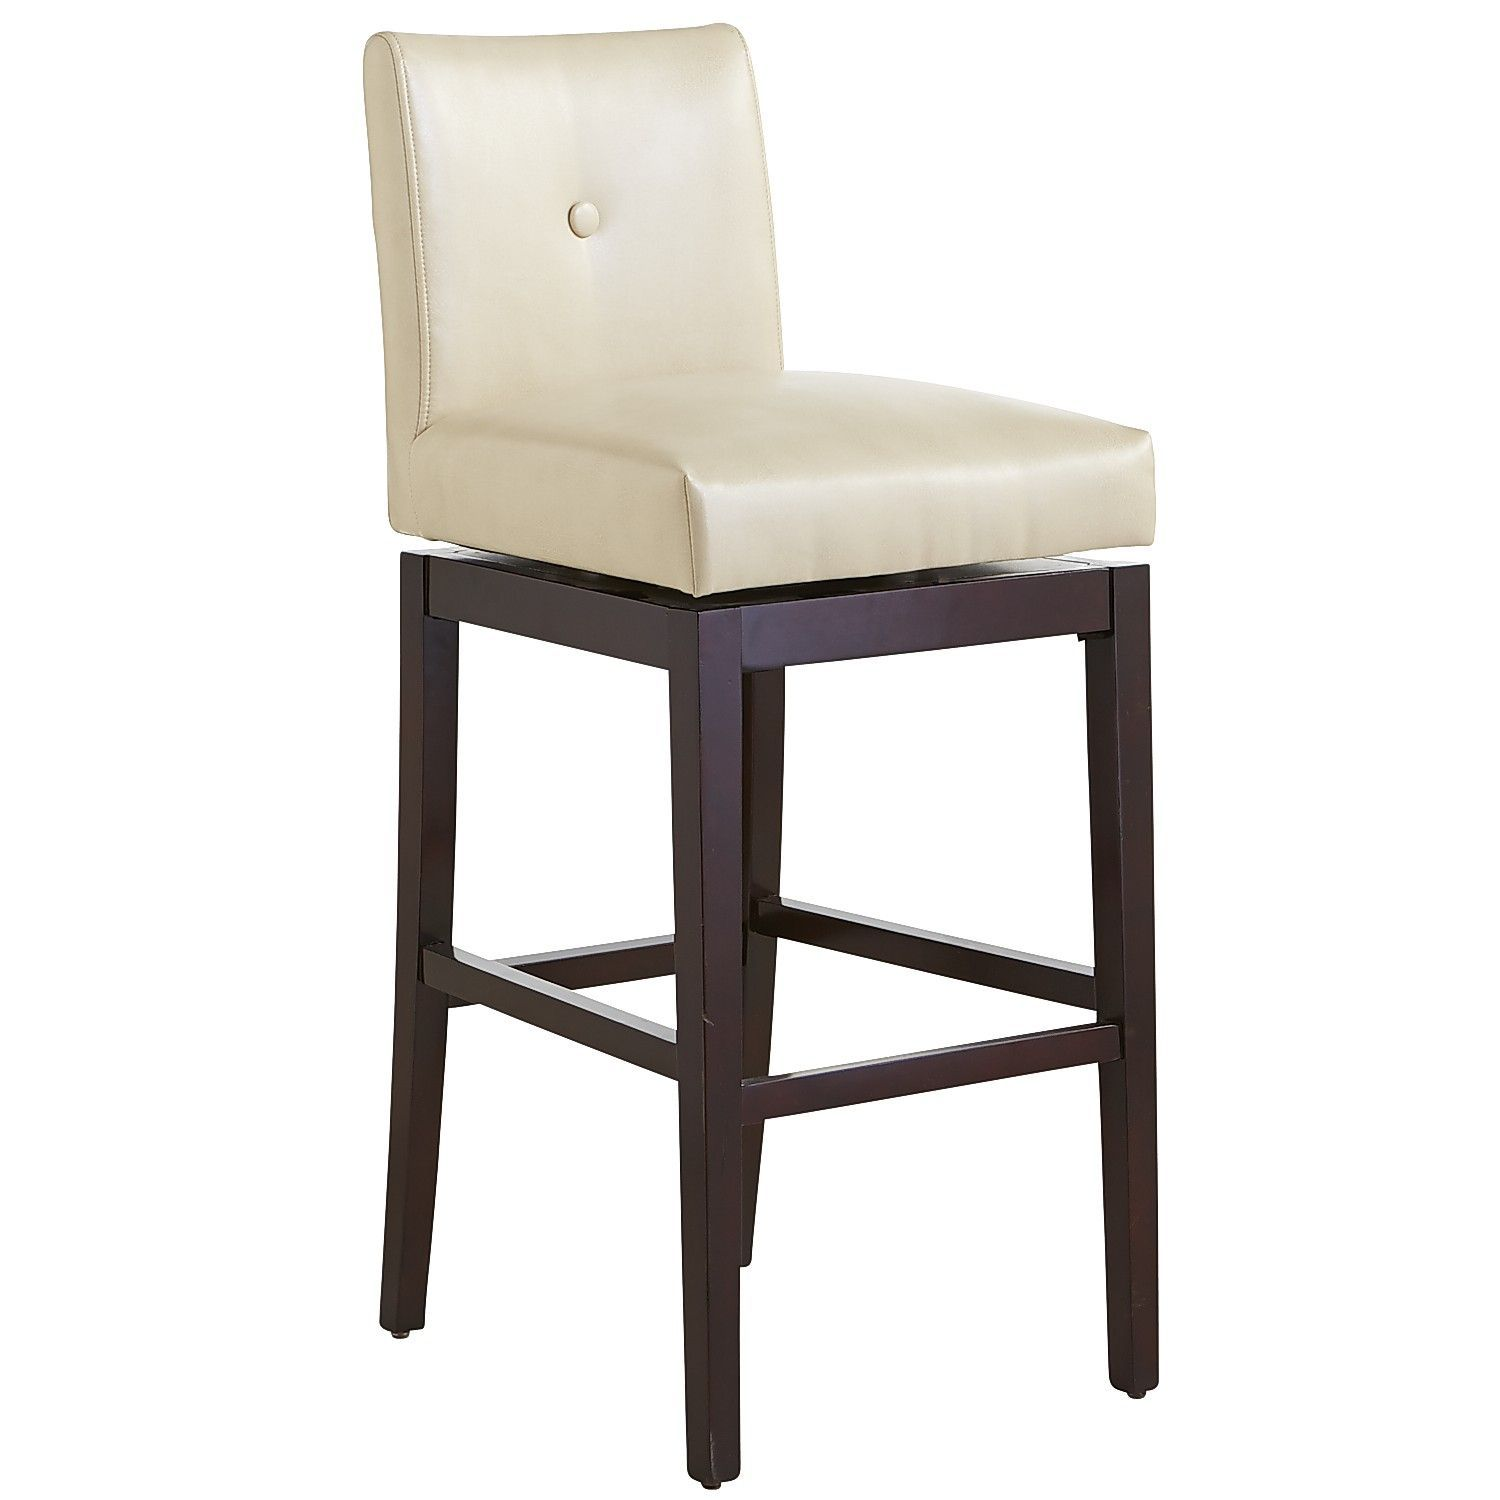 Mattie Low Back Swivel Bar Stool Smoke Has The Color Frame And